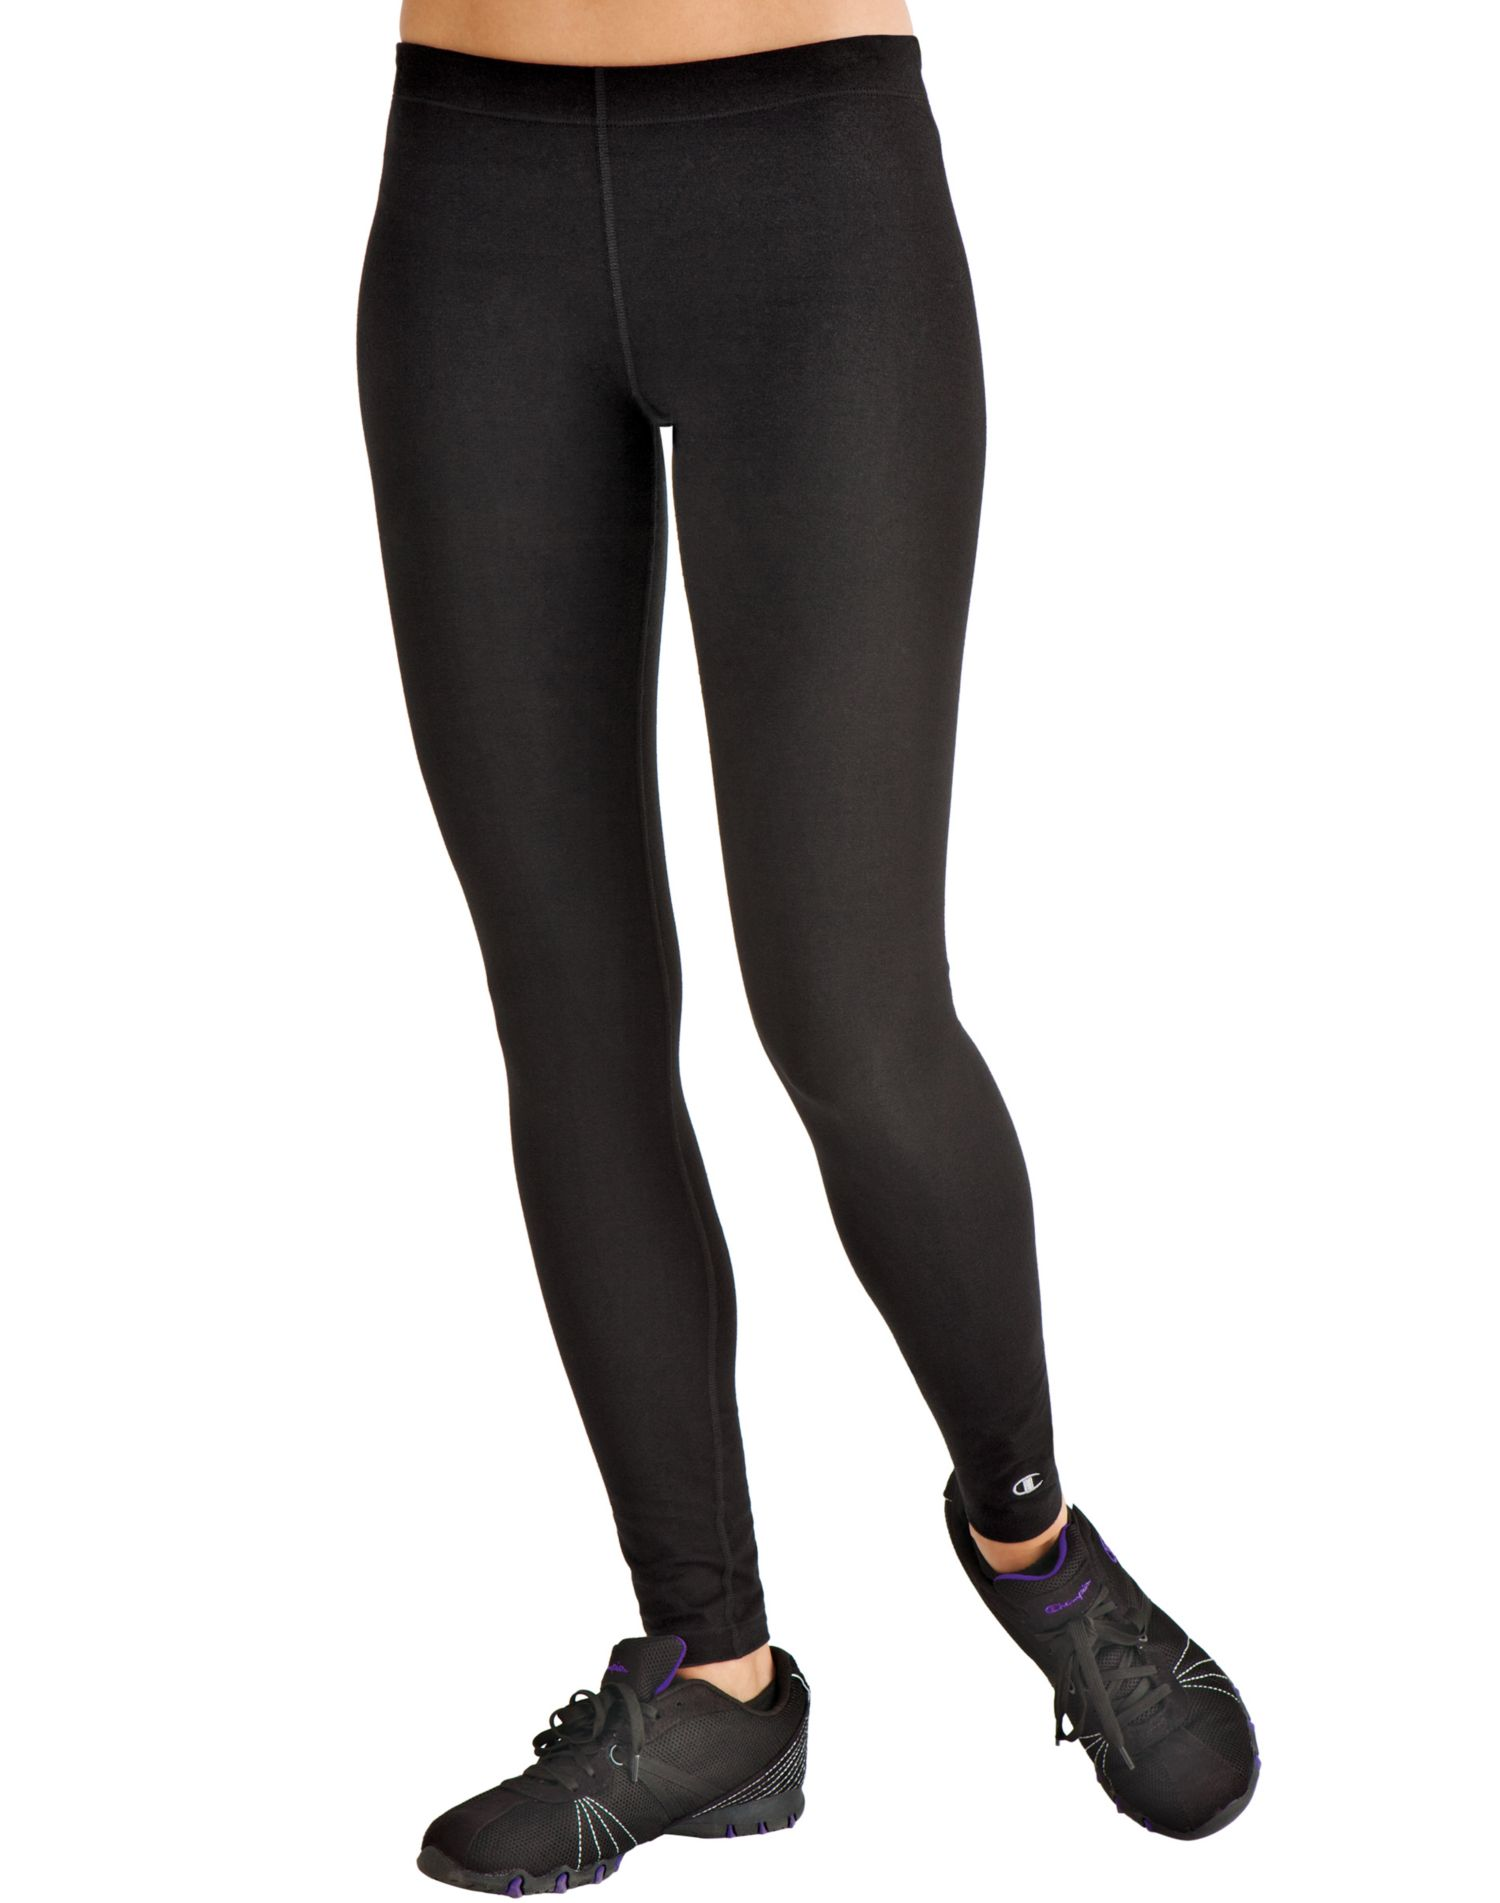 Champion Leggings 8373 - Champion Double Dry® Cotton Skinny Tights